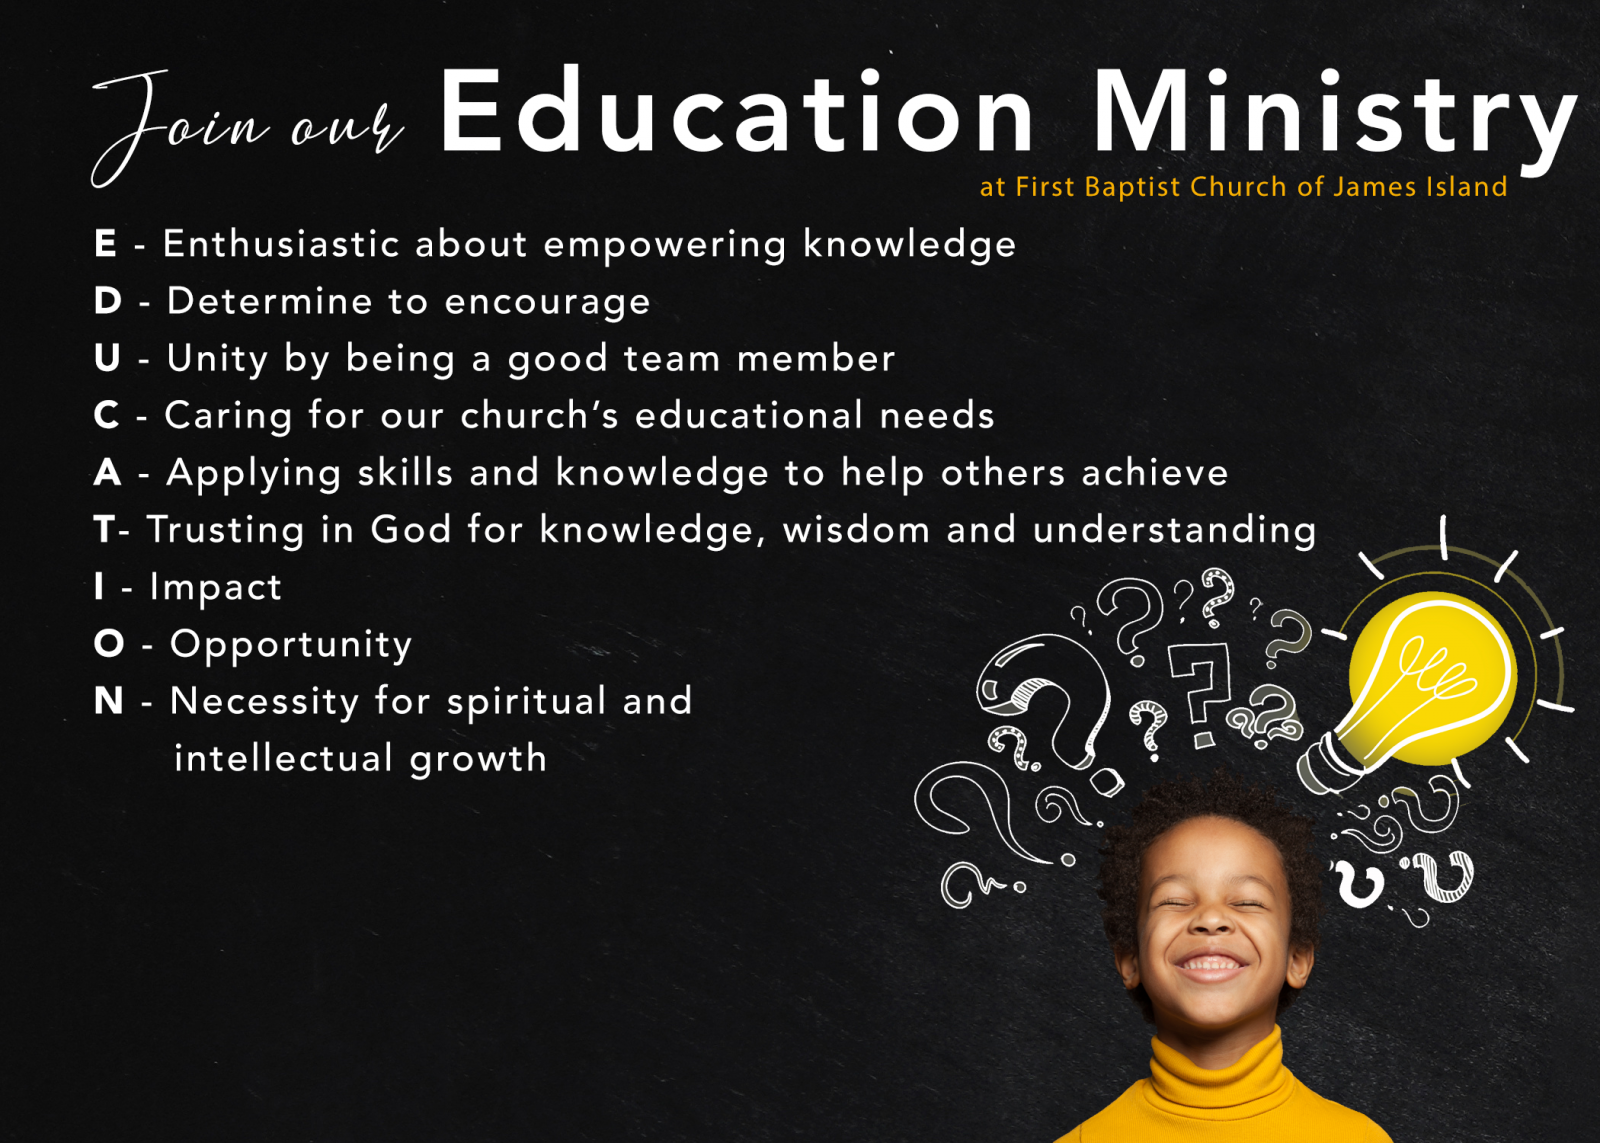 Join our Education Ministry